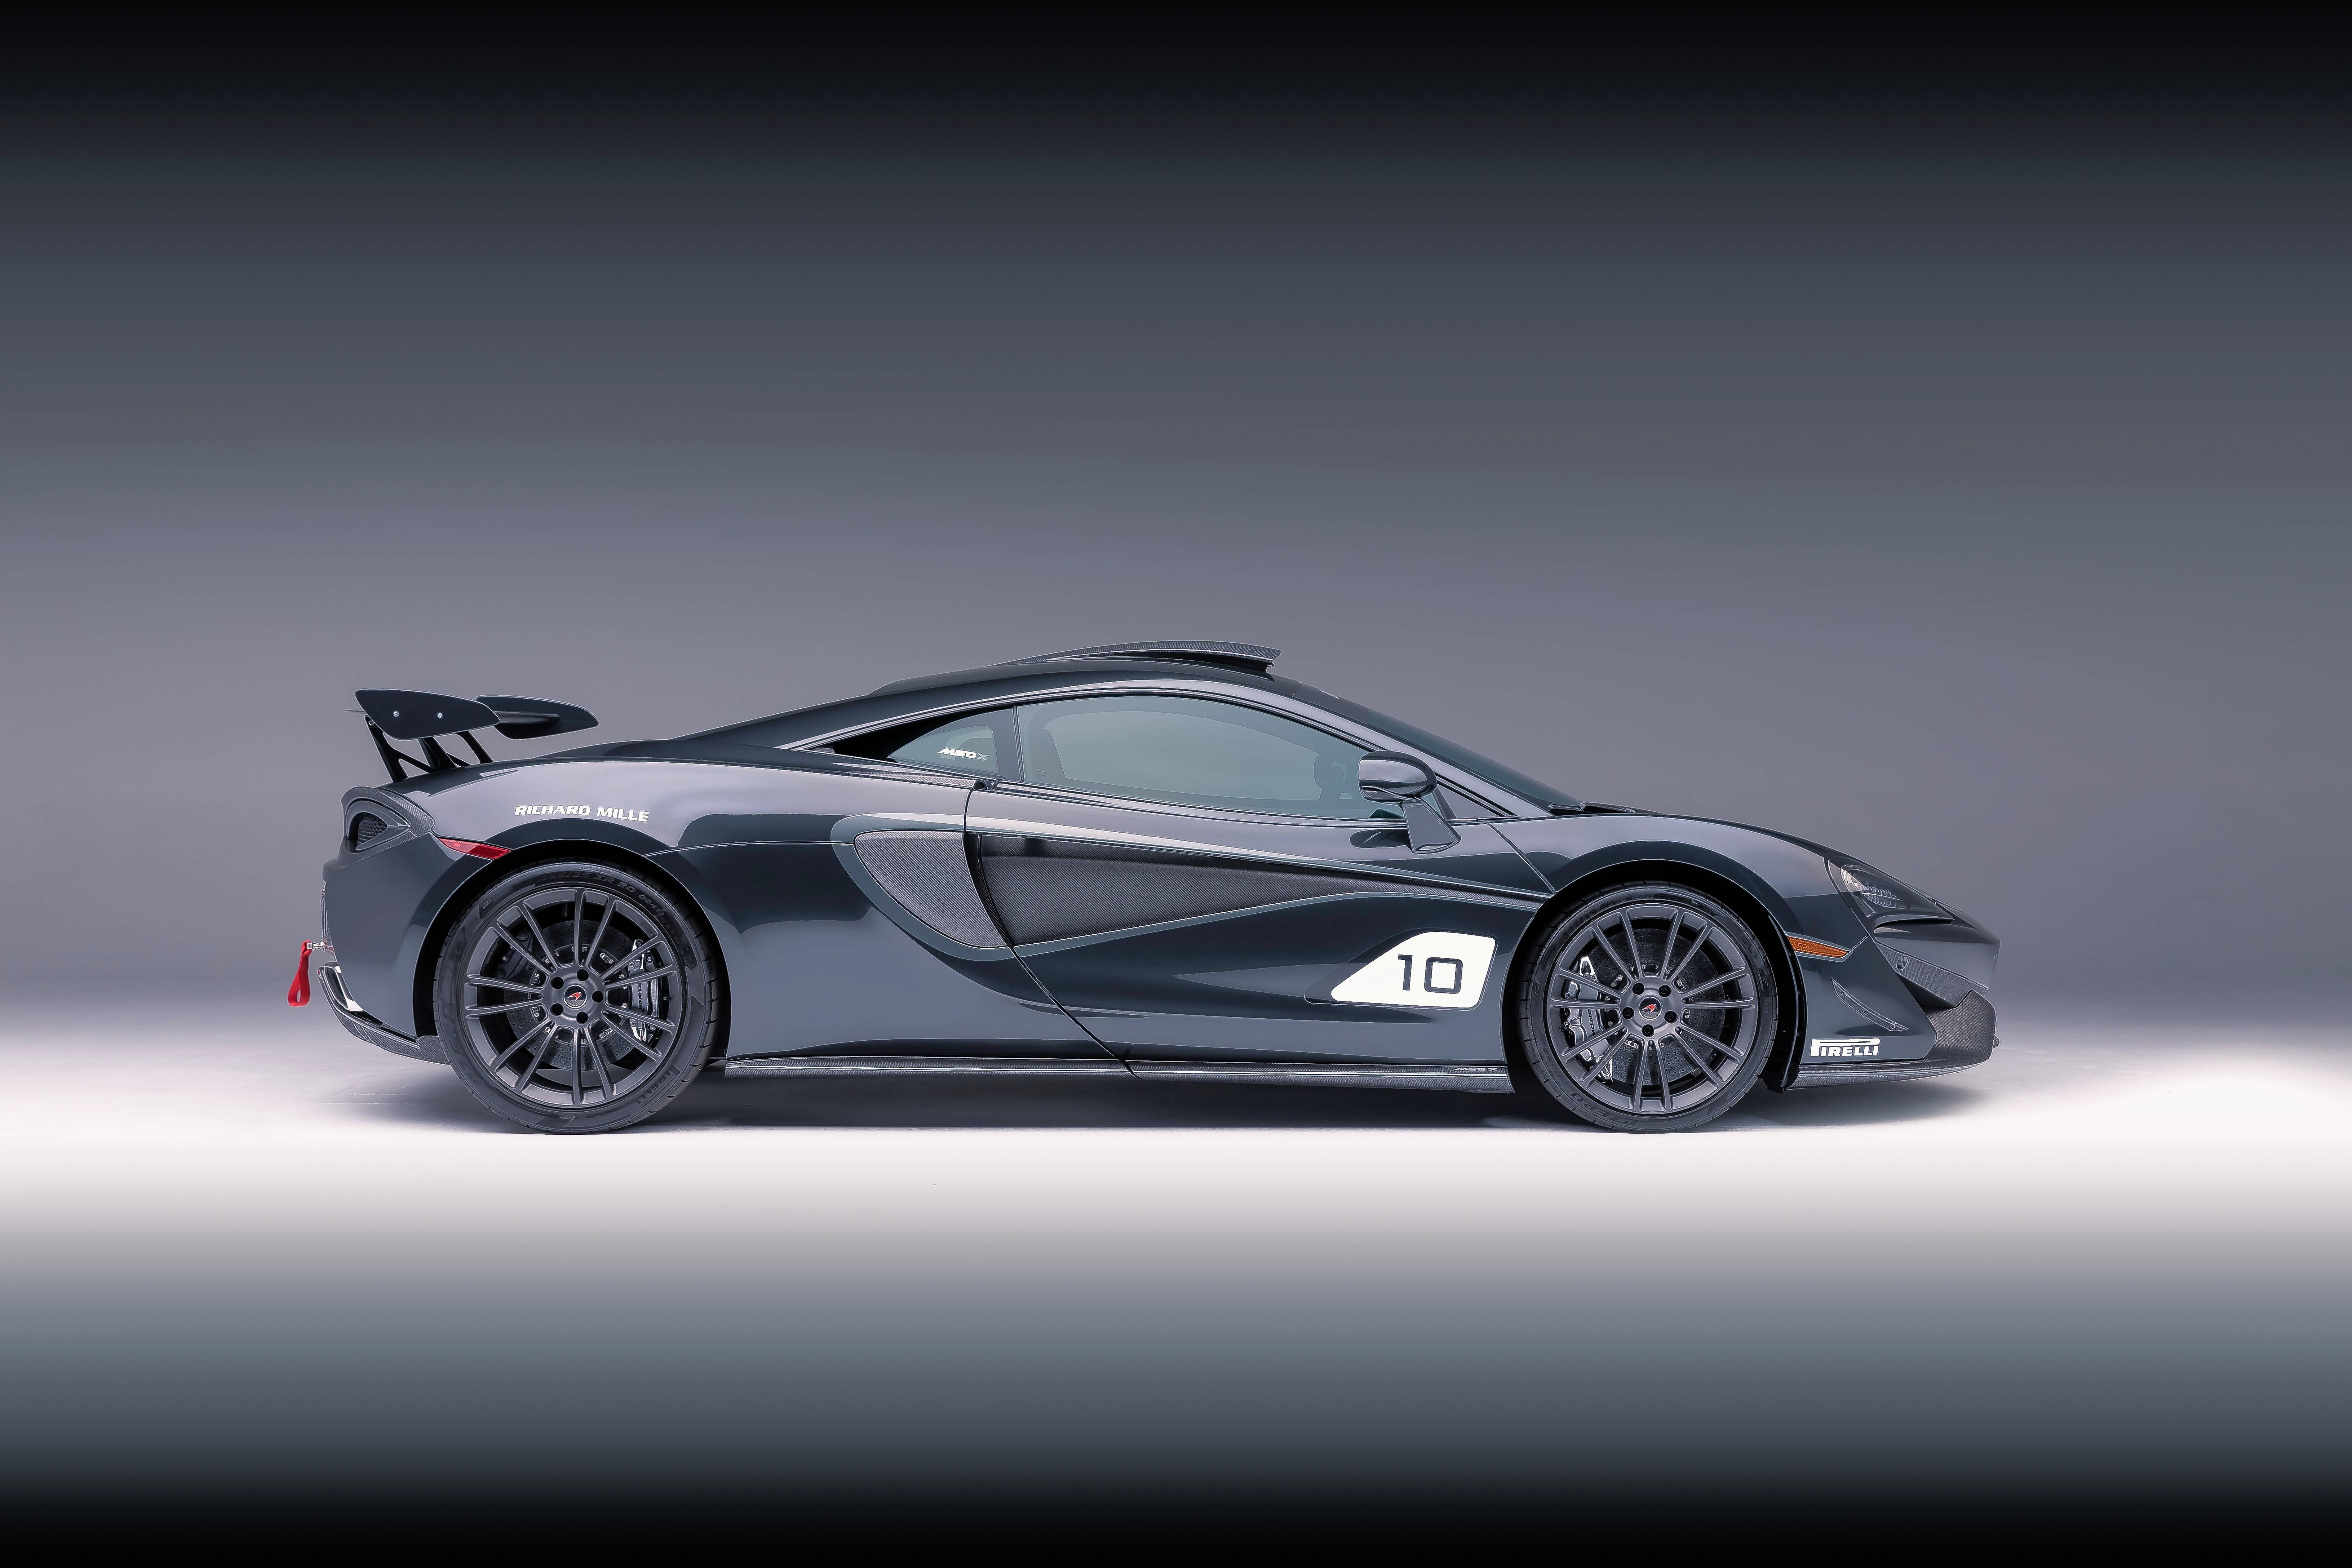 Courtesy of McLarenCar #10 MSO X is painted Ueno Grey, highlighted by black accents. It's inspired by the F1 GTR chassis #01R which raced and finished 1st overall at the 24 hours of Le Mans in 1995.